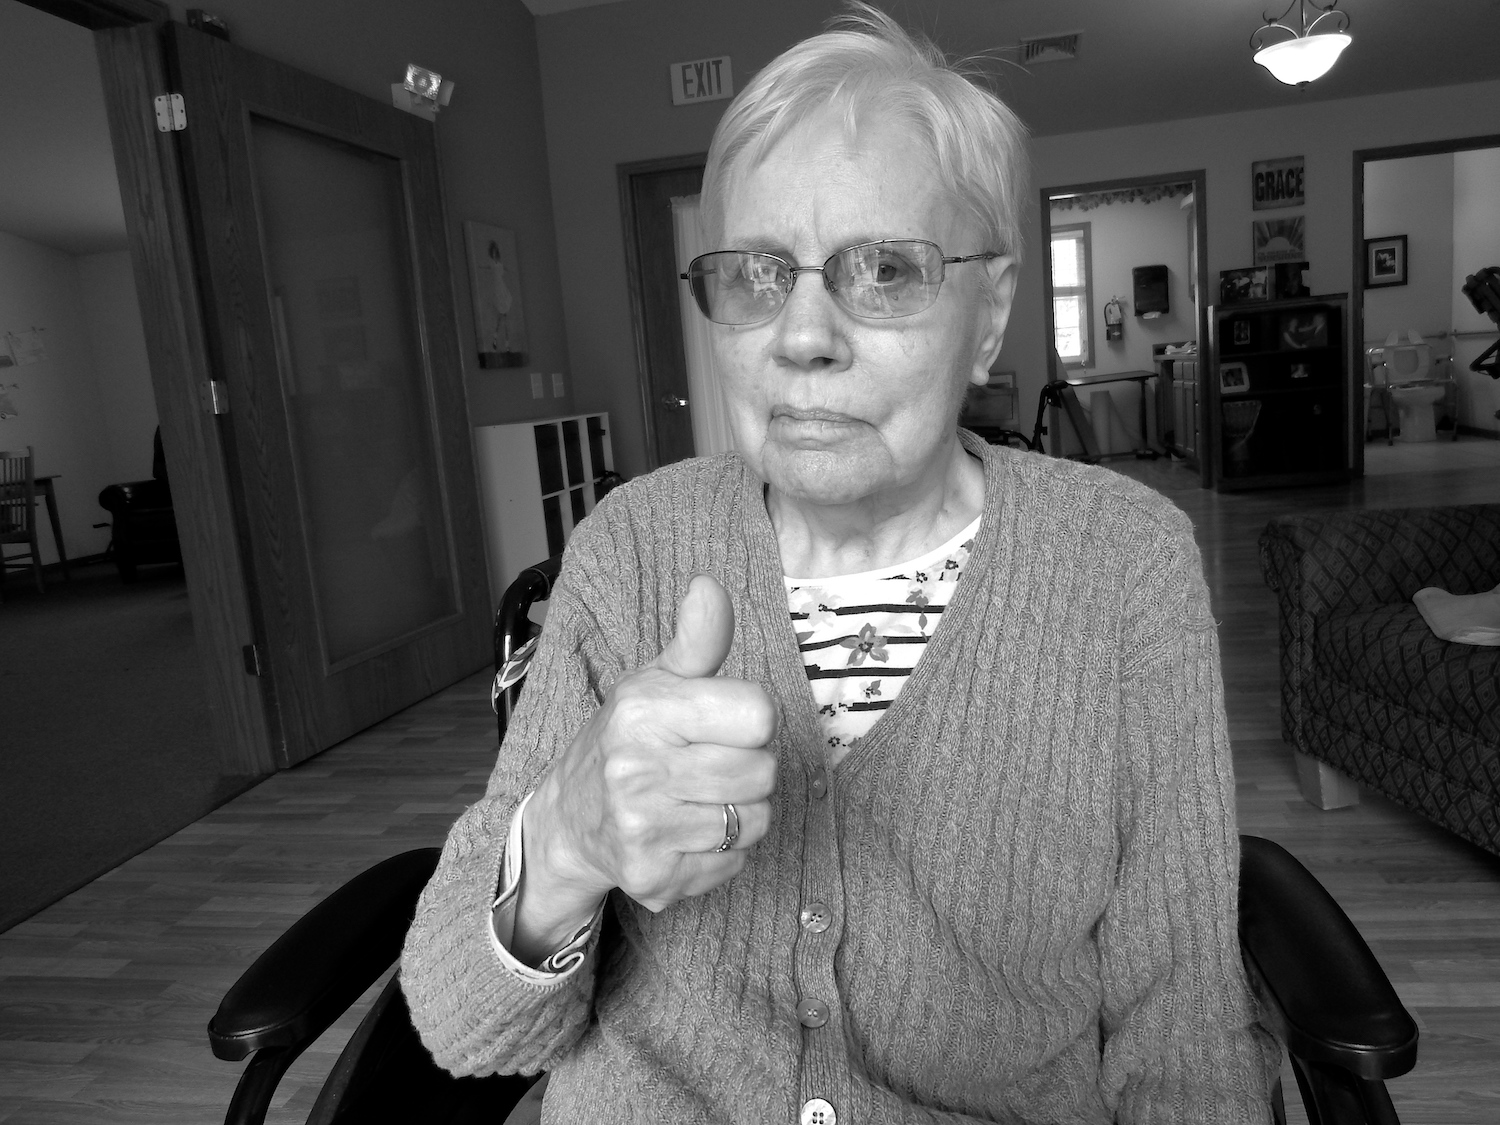 seniors home resident gives a thumbs up